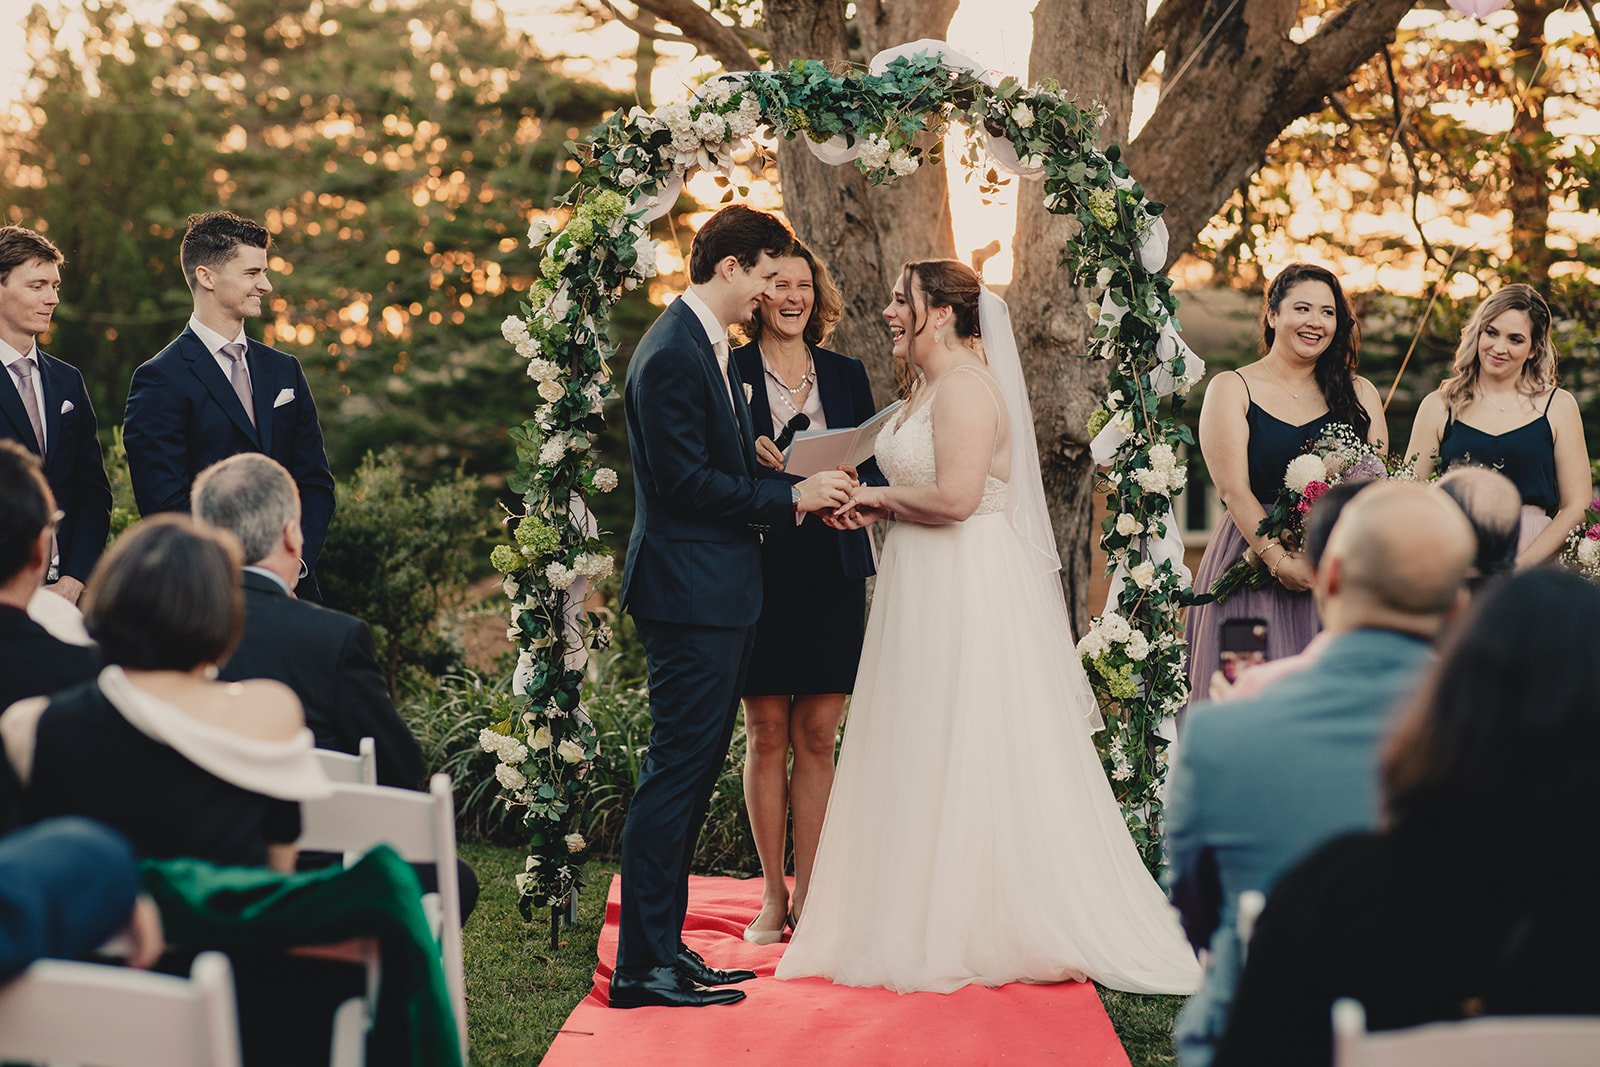 Sydney wedding celebrant - relaxed and personal wedding ceremonies